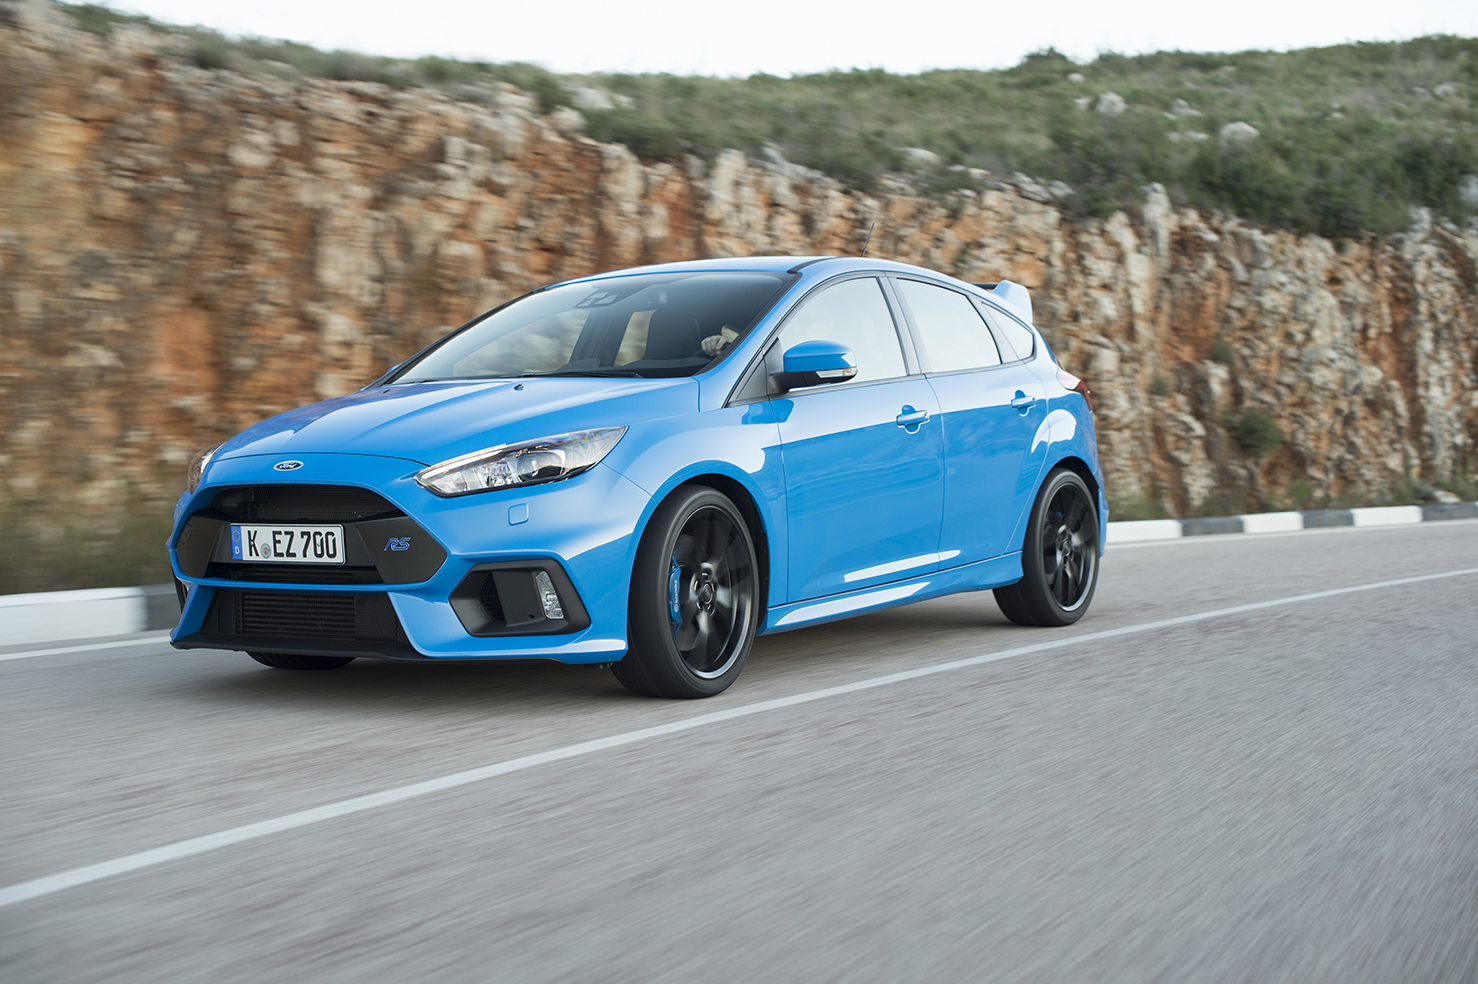 La nuova Ford Focus RS